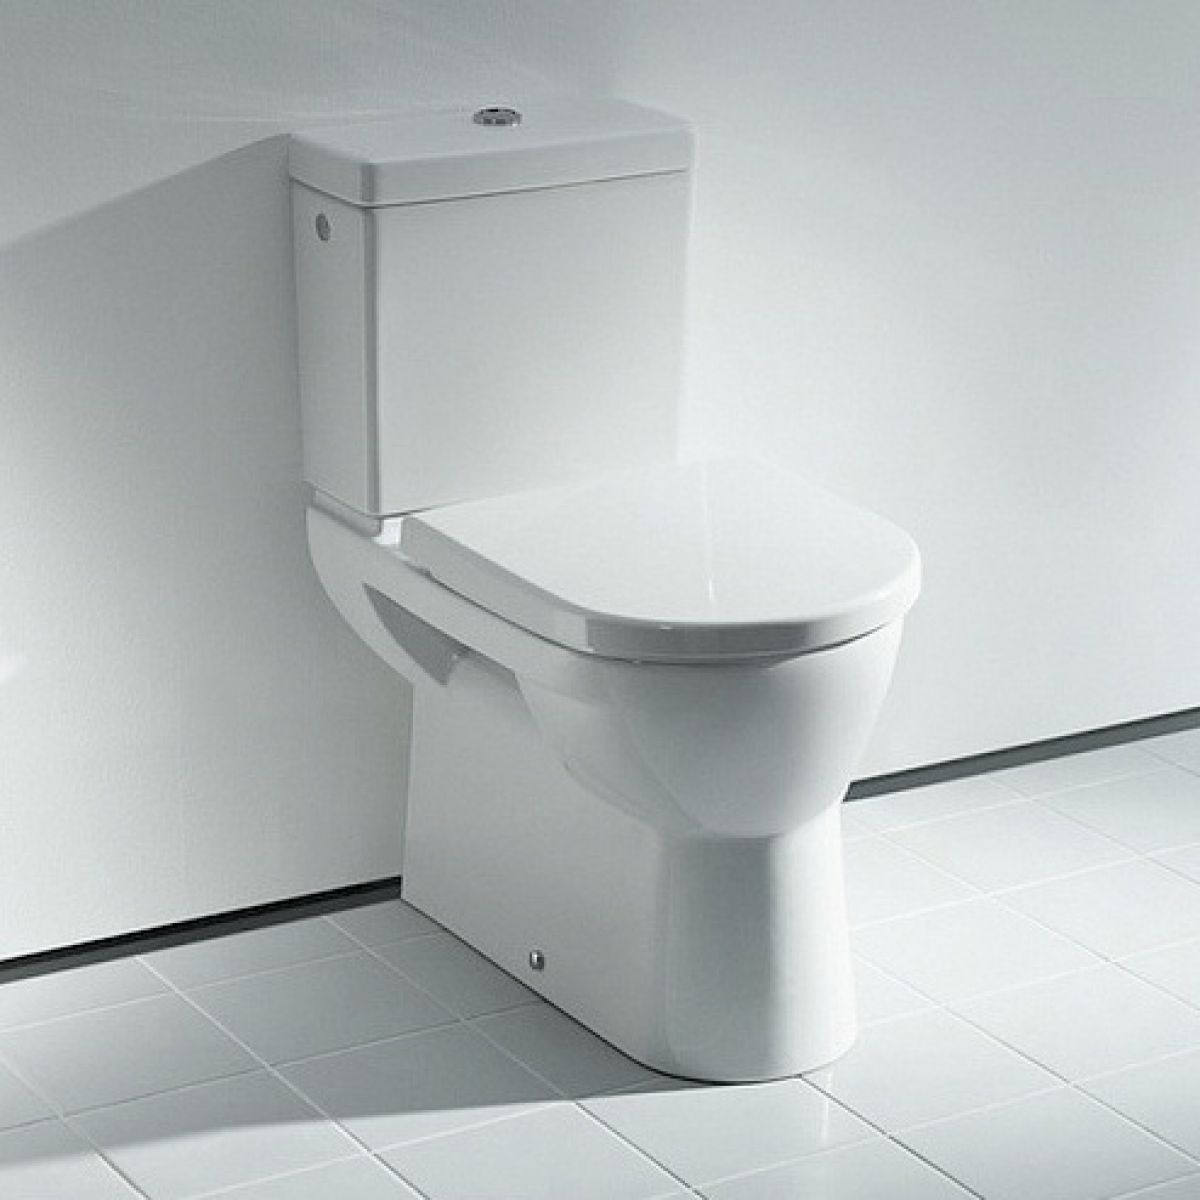 laufen pro close coupled wc suite back to wall uk bathrooms. Black Bedroom Furniture Sets. Home Design Ideas